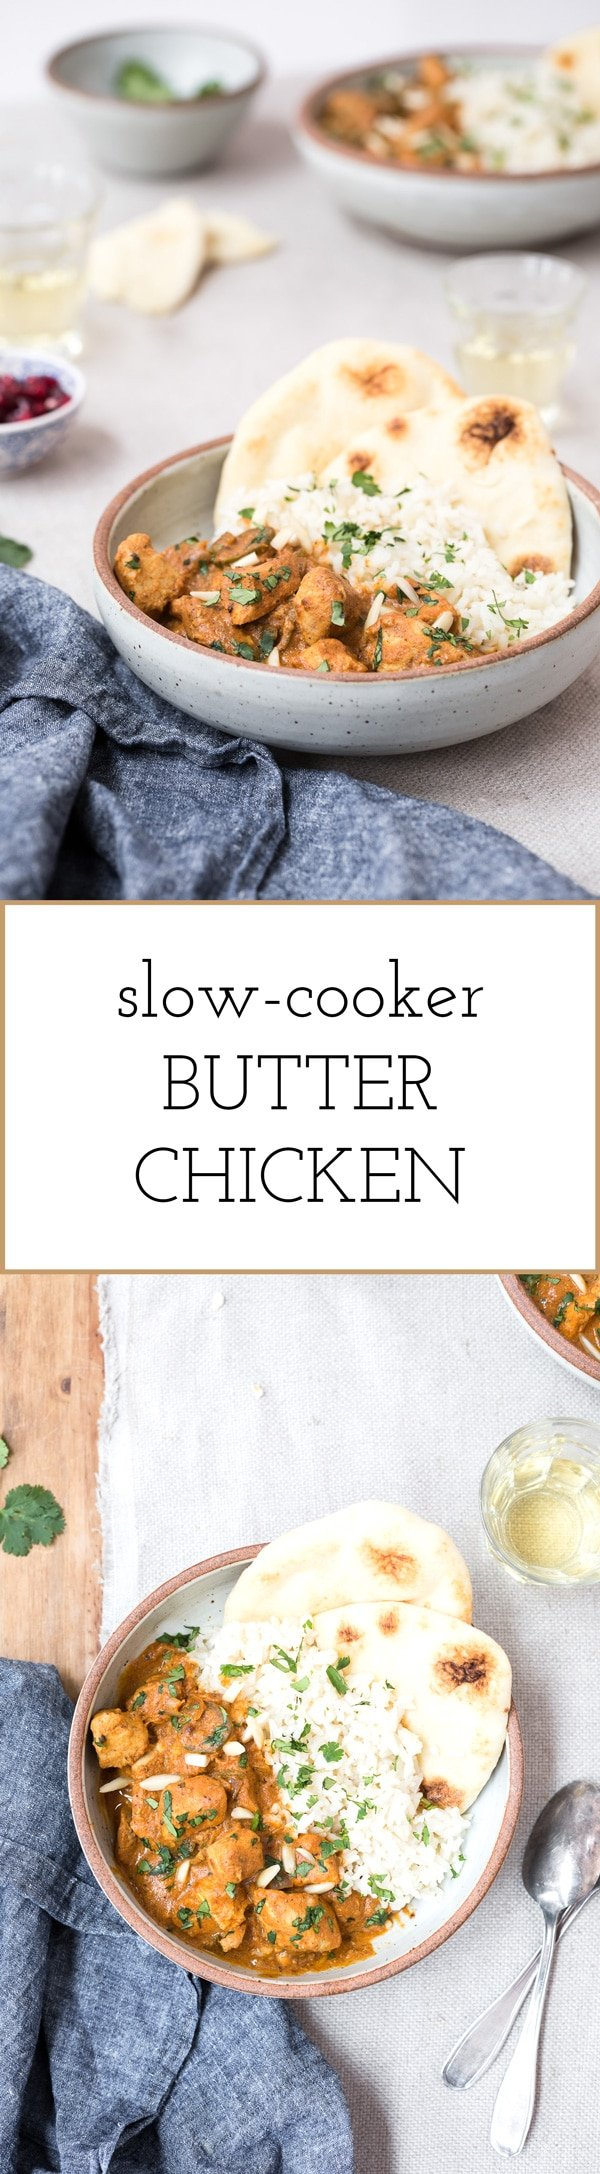 Recipe for slow cooker butter chicken